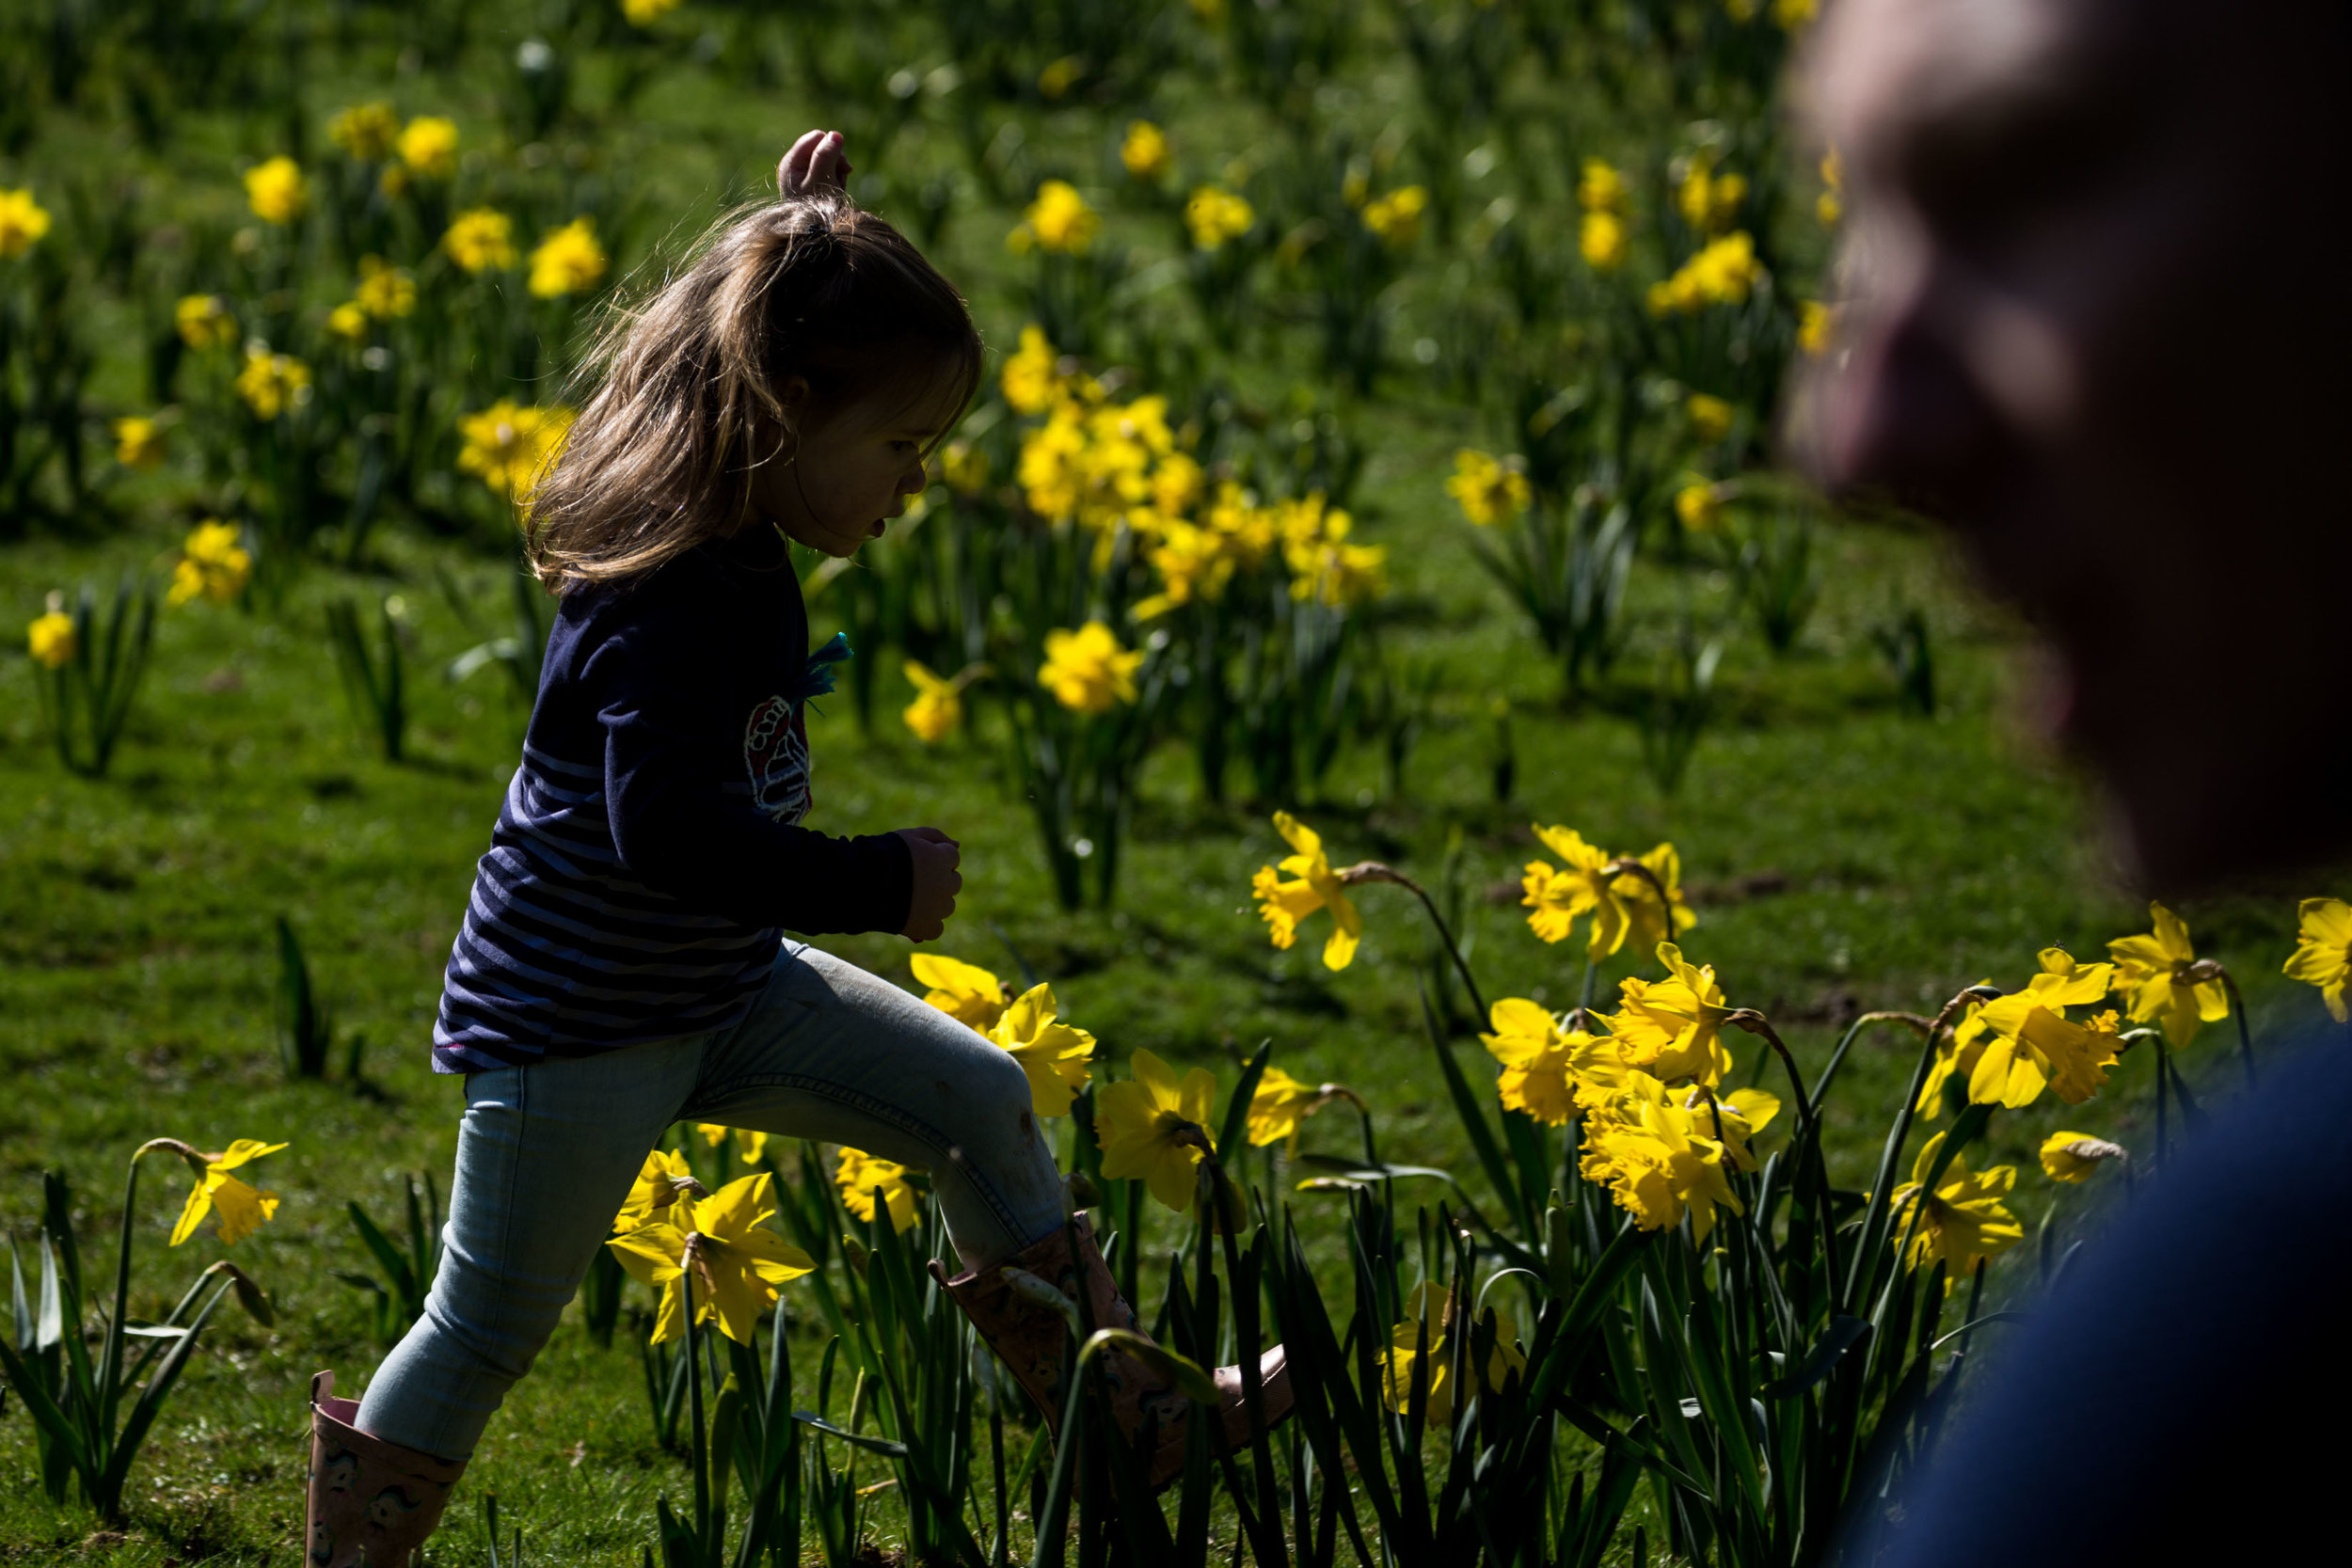 Hazel carefully walking through the daffodil patch and trying not to step on any after lengthy conversations about being gentle with nature and plants.